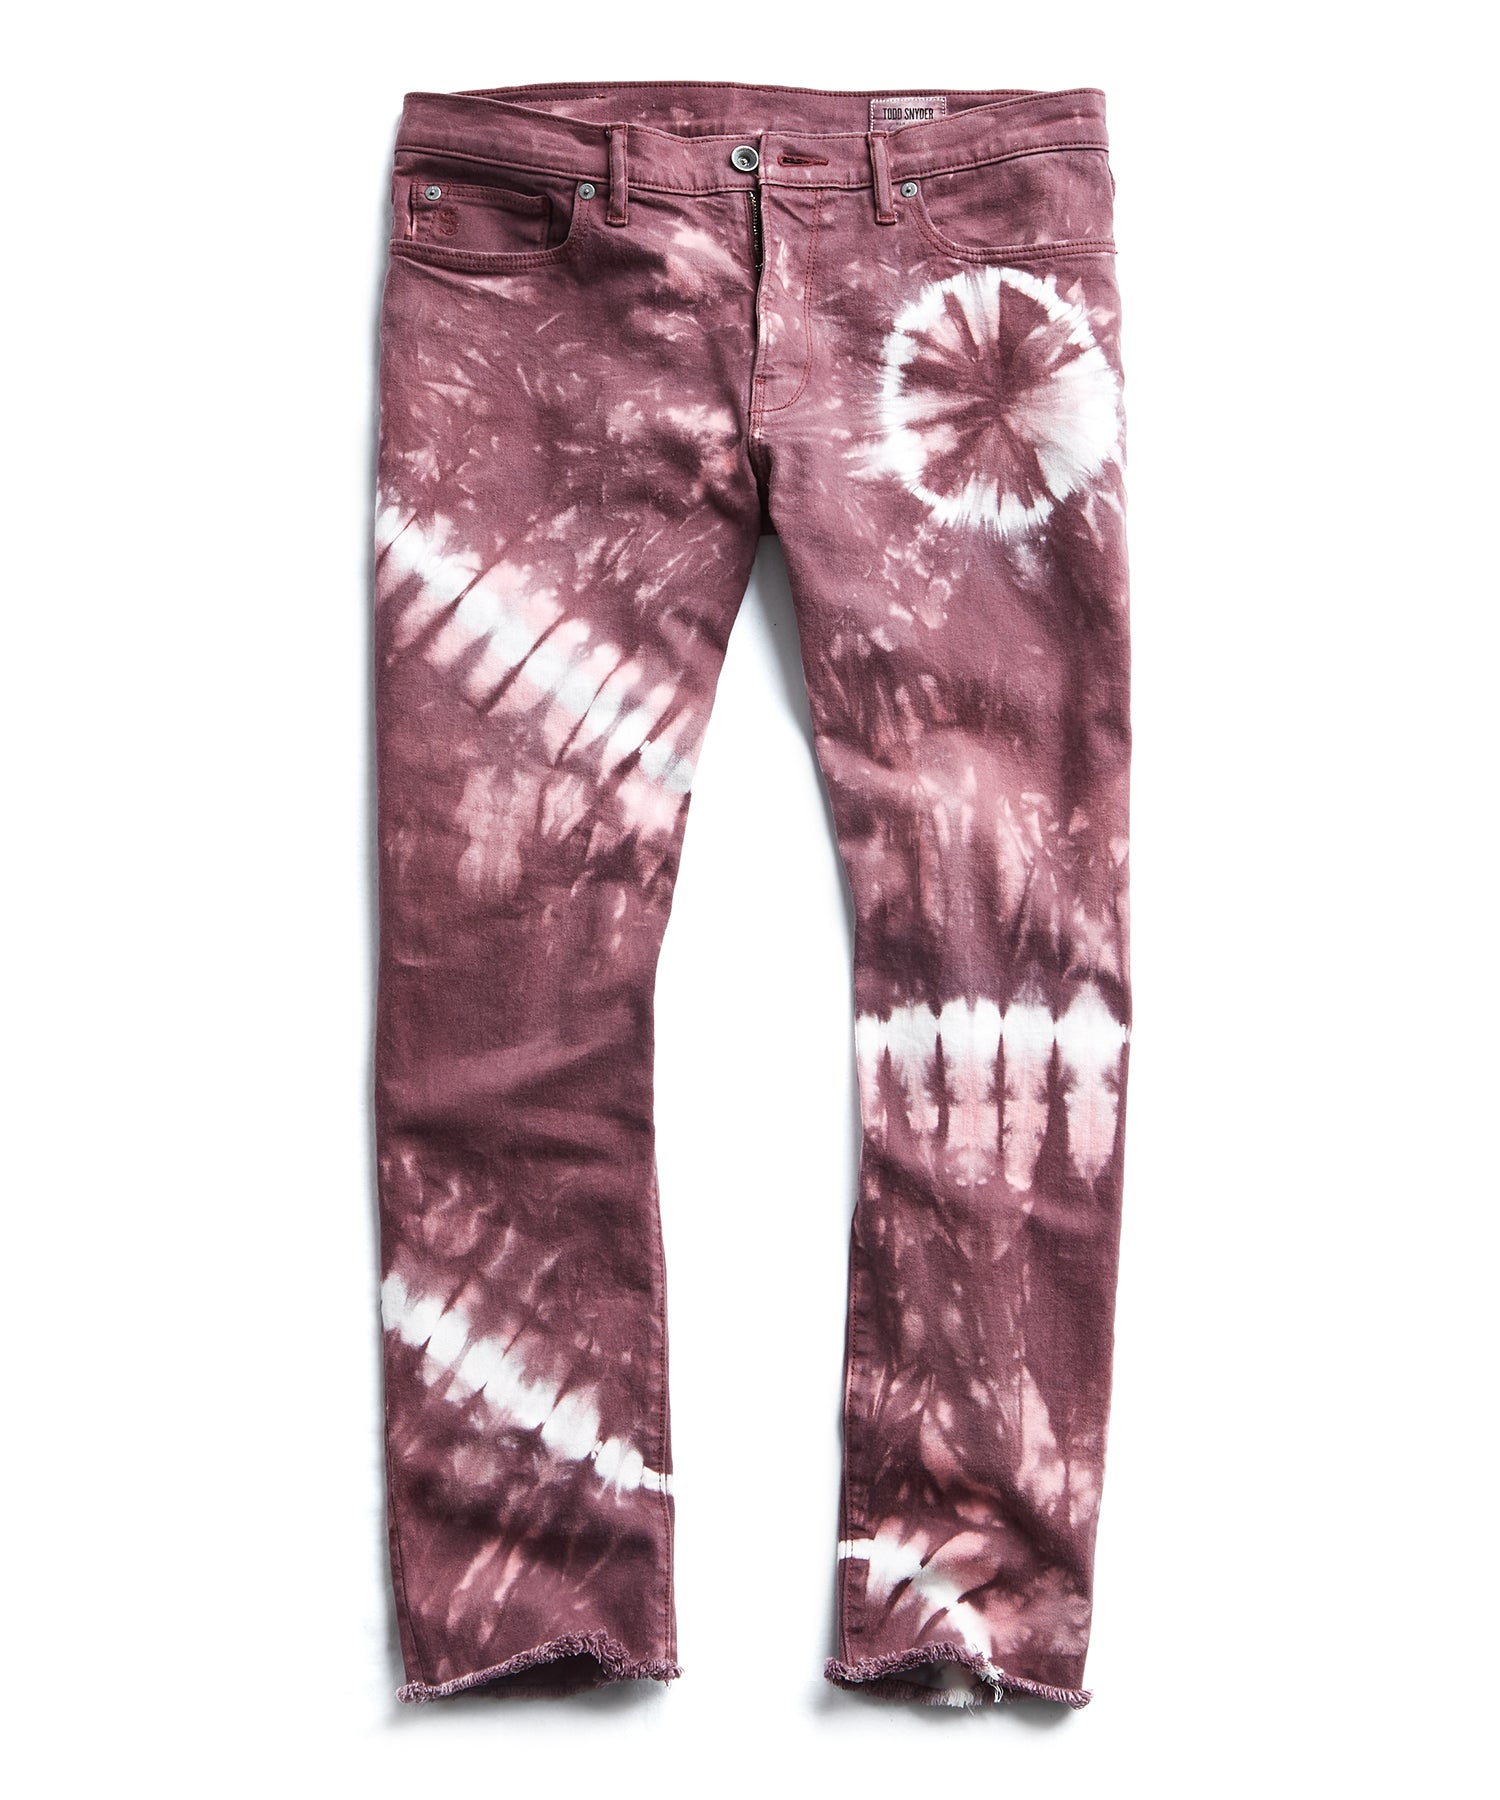 Cut Off Tie Dye Denim in Burgundy